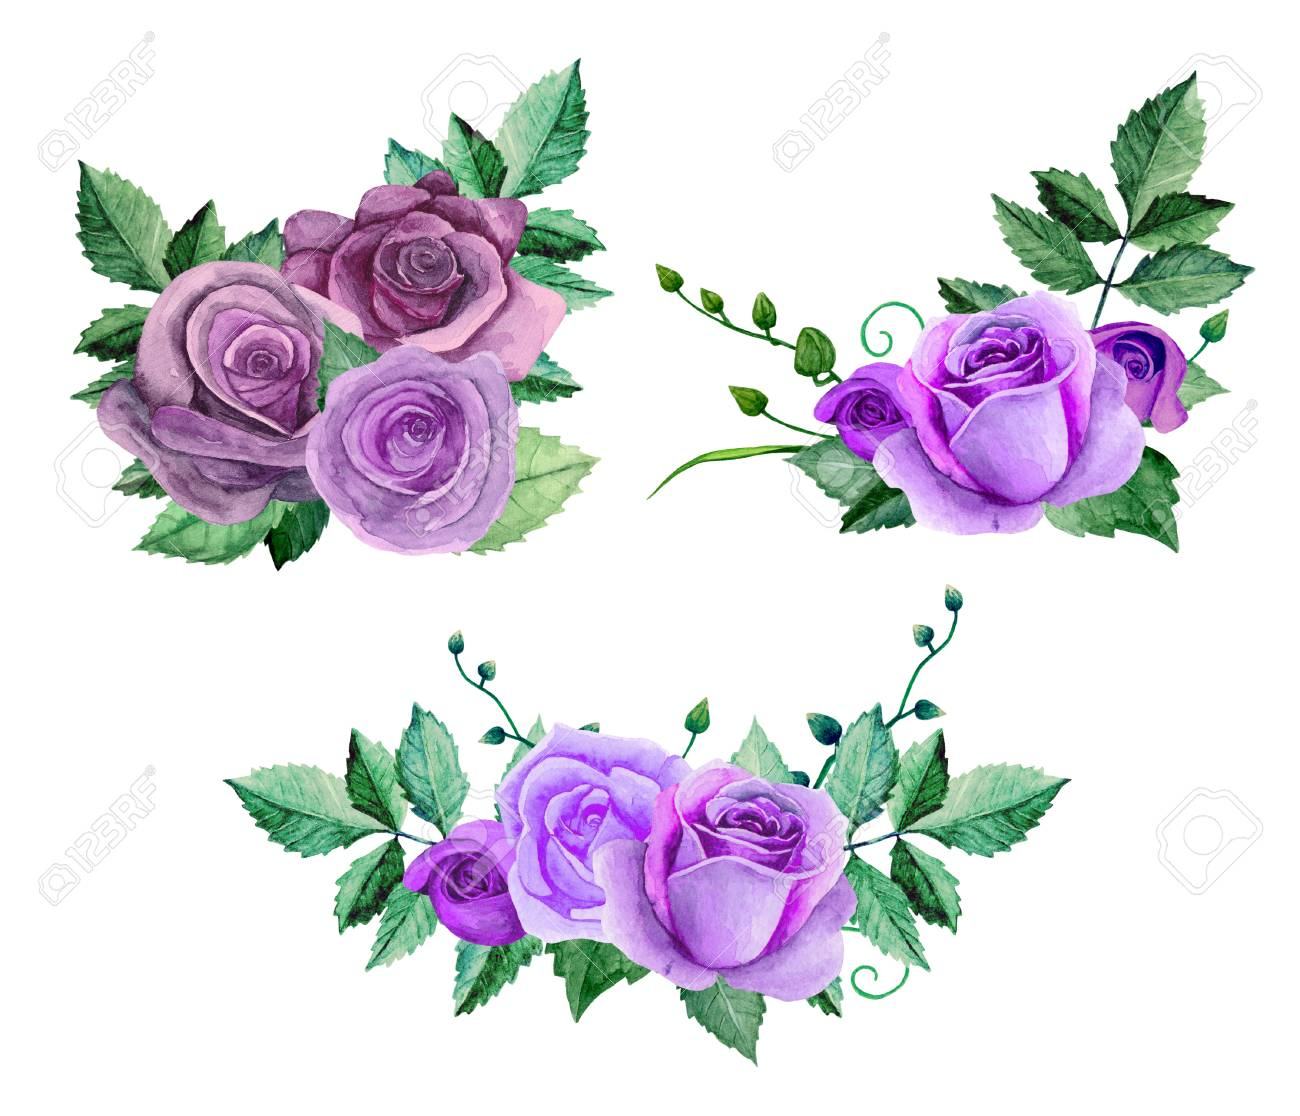 Watercolor Purple Roses Bouquets. Flowers Clip Art. Floral Hand ...